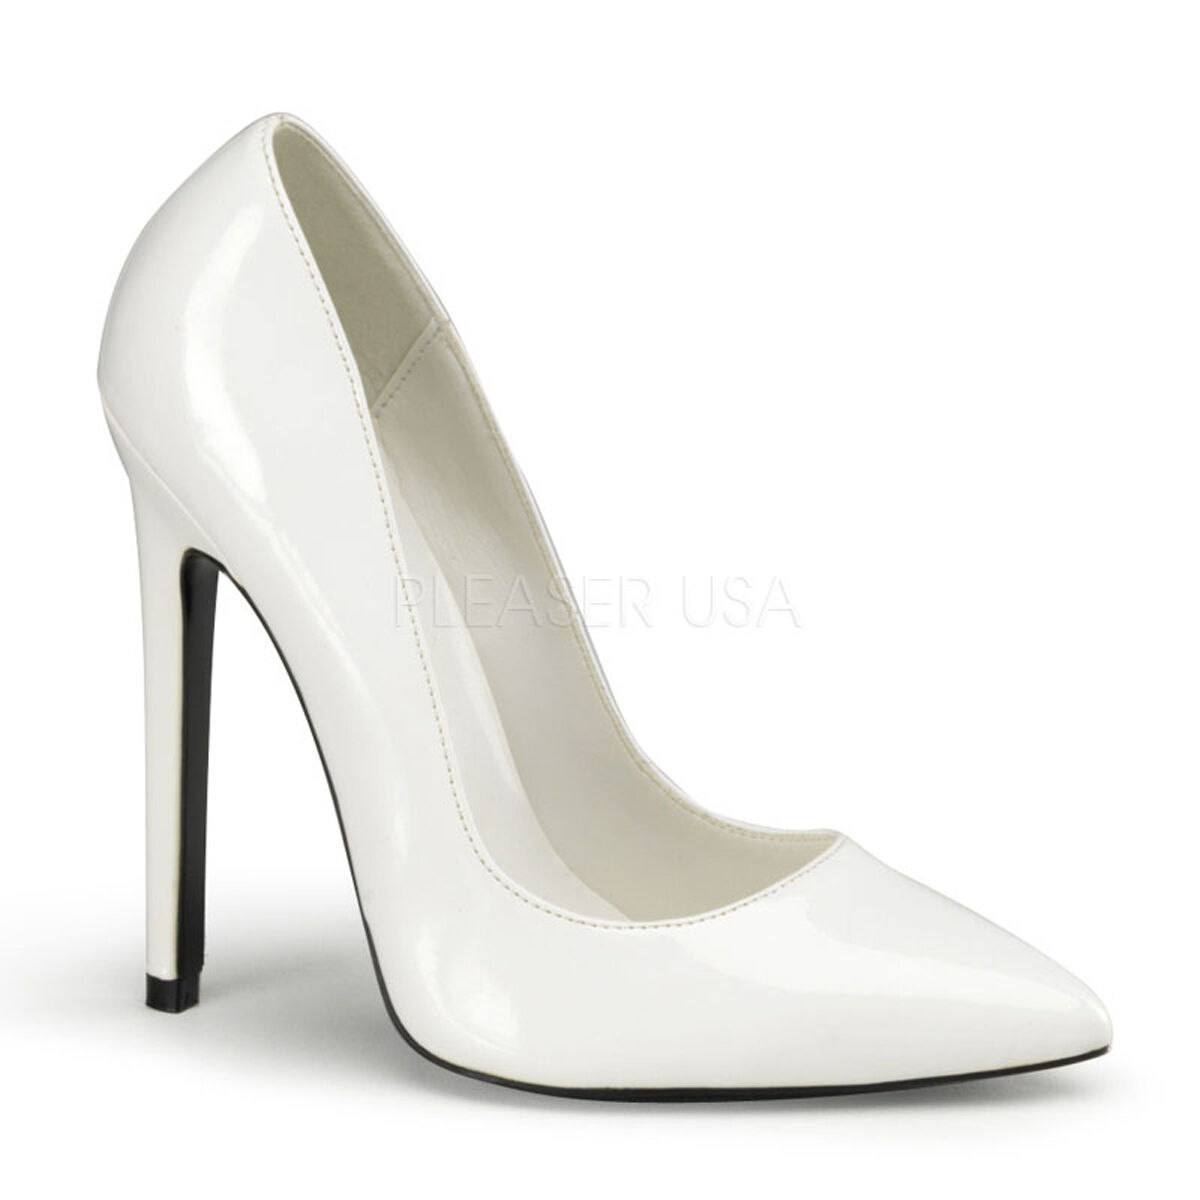 PLEASER Sexy shoes Classic White 5  Stilettos High Heels Pumps  SEXY20 W